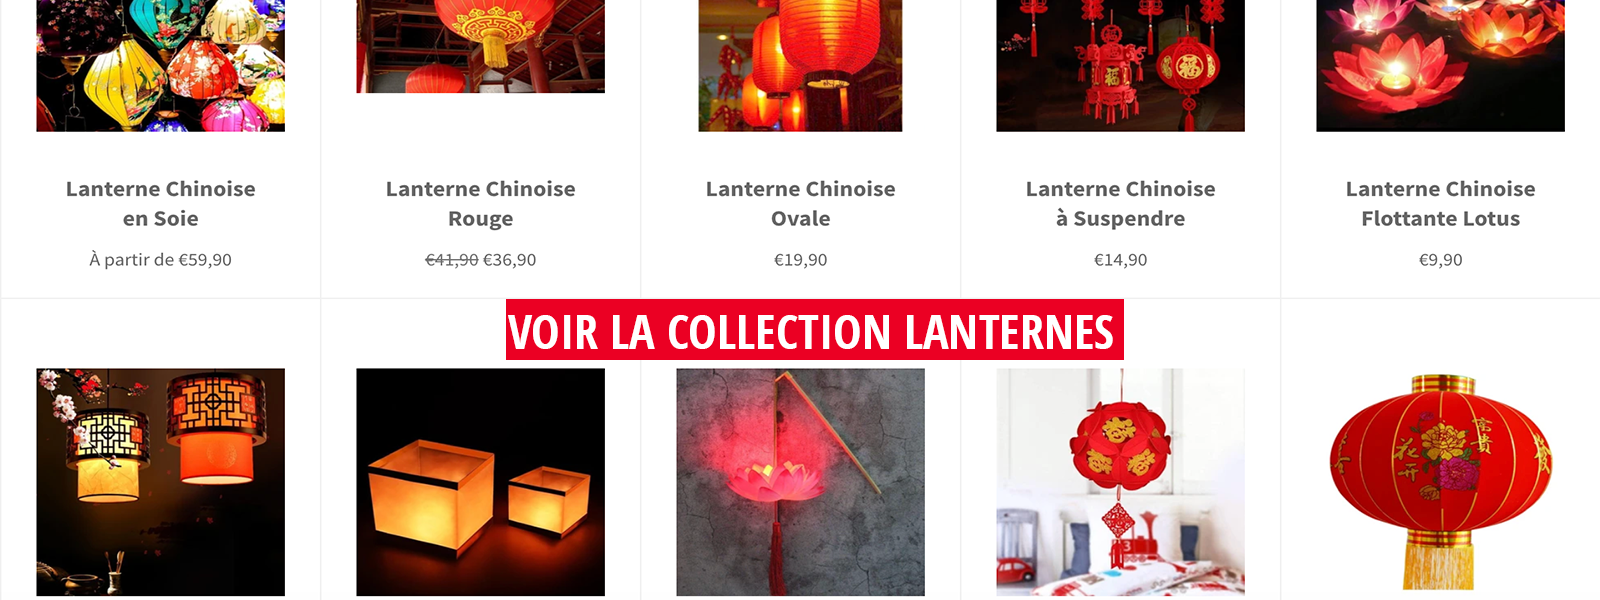 collection lanterne